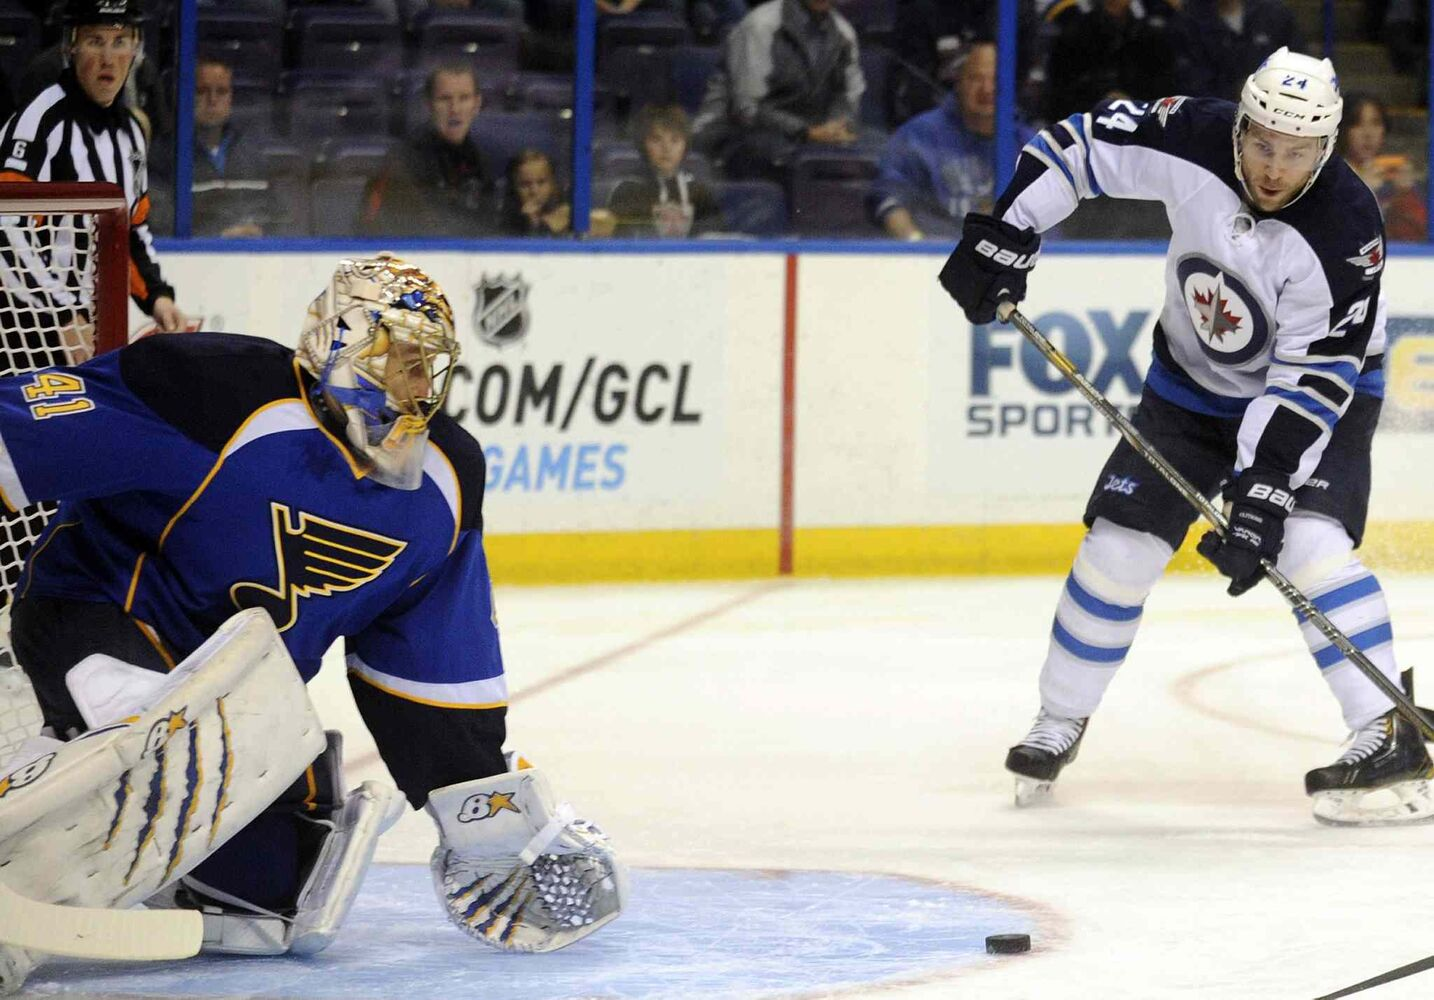 St. Louis Blues' goalie Jaroslav Halak blocks a shot by Winnipeg Jets defenceman Grant Clitsome in the first period. (Bill Boyce / the associated press)